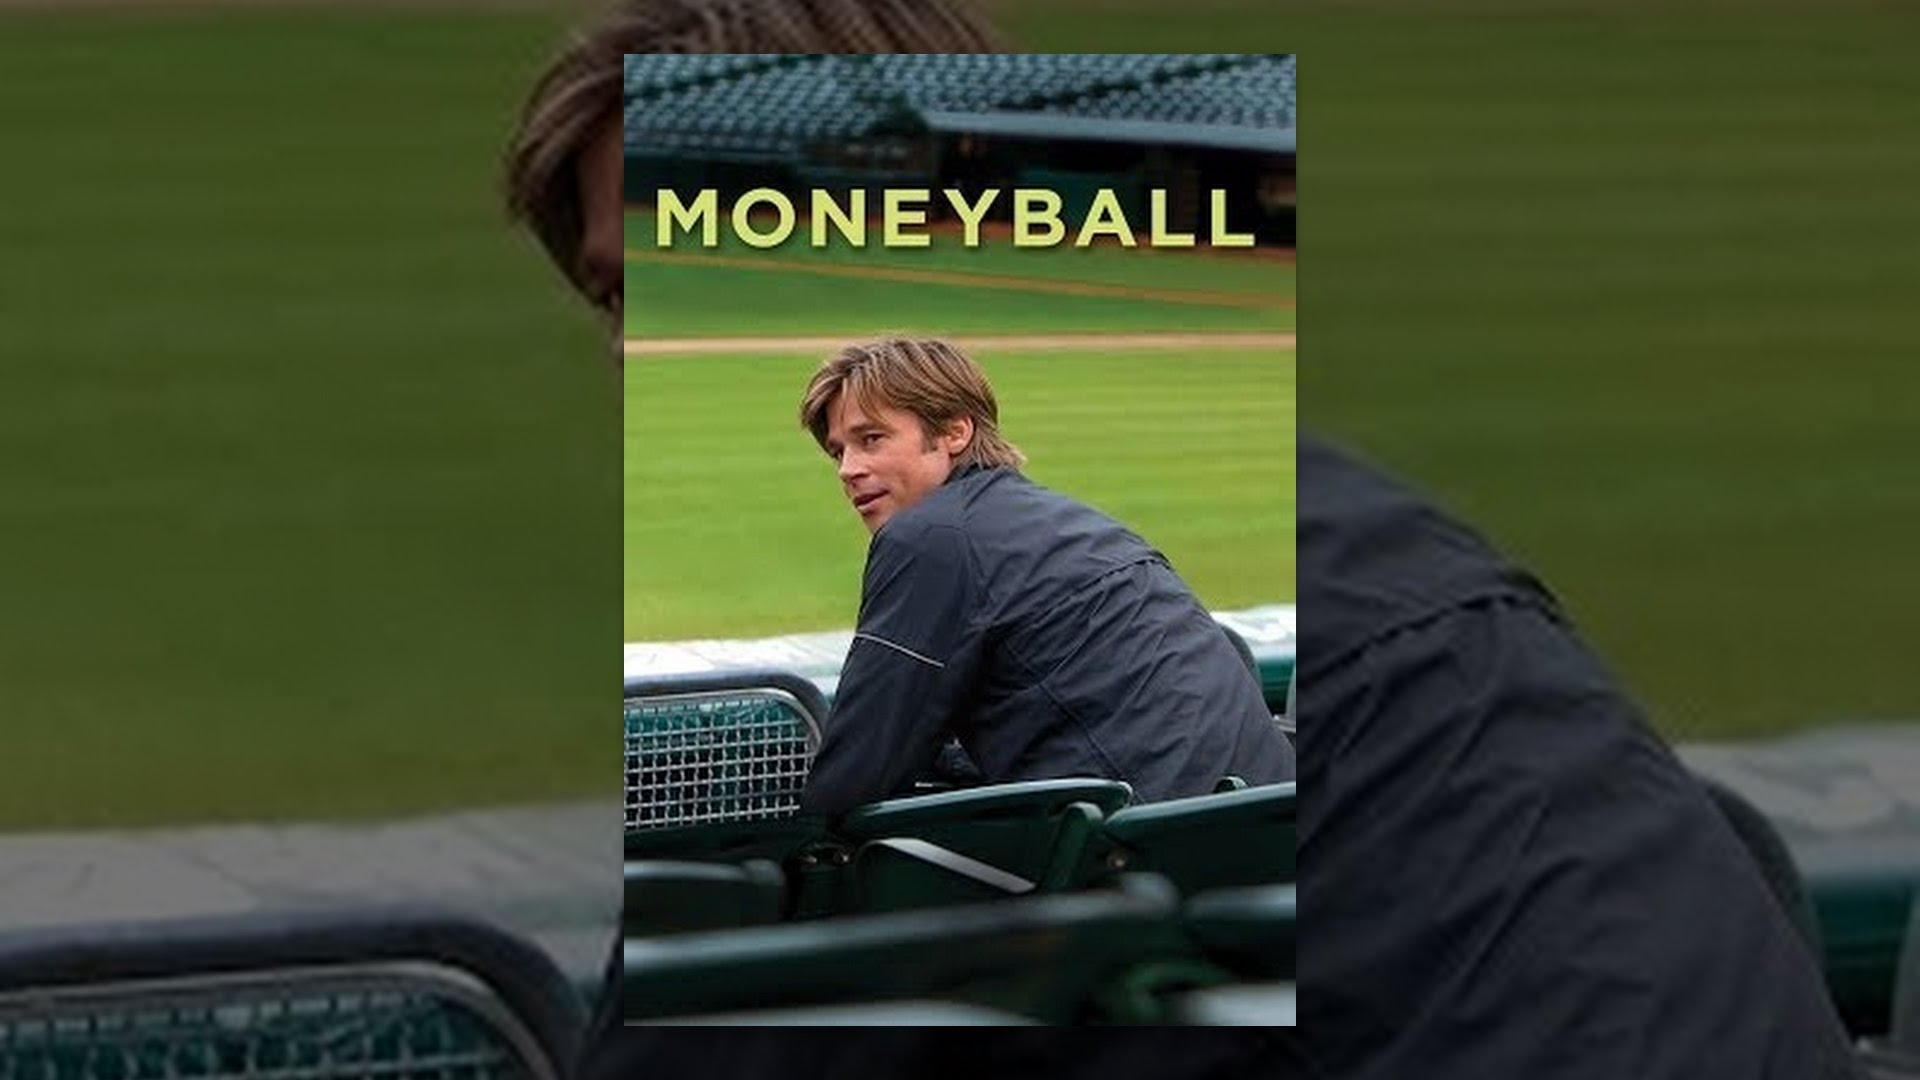 moneyball paper Moneyball questions and answers - discover the enotescom community of teachers, mentors and students just like you that can answer any question you might have on moneyball.